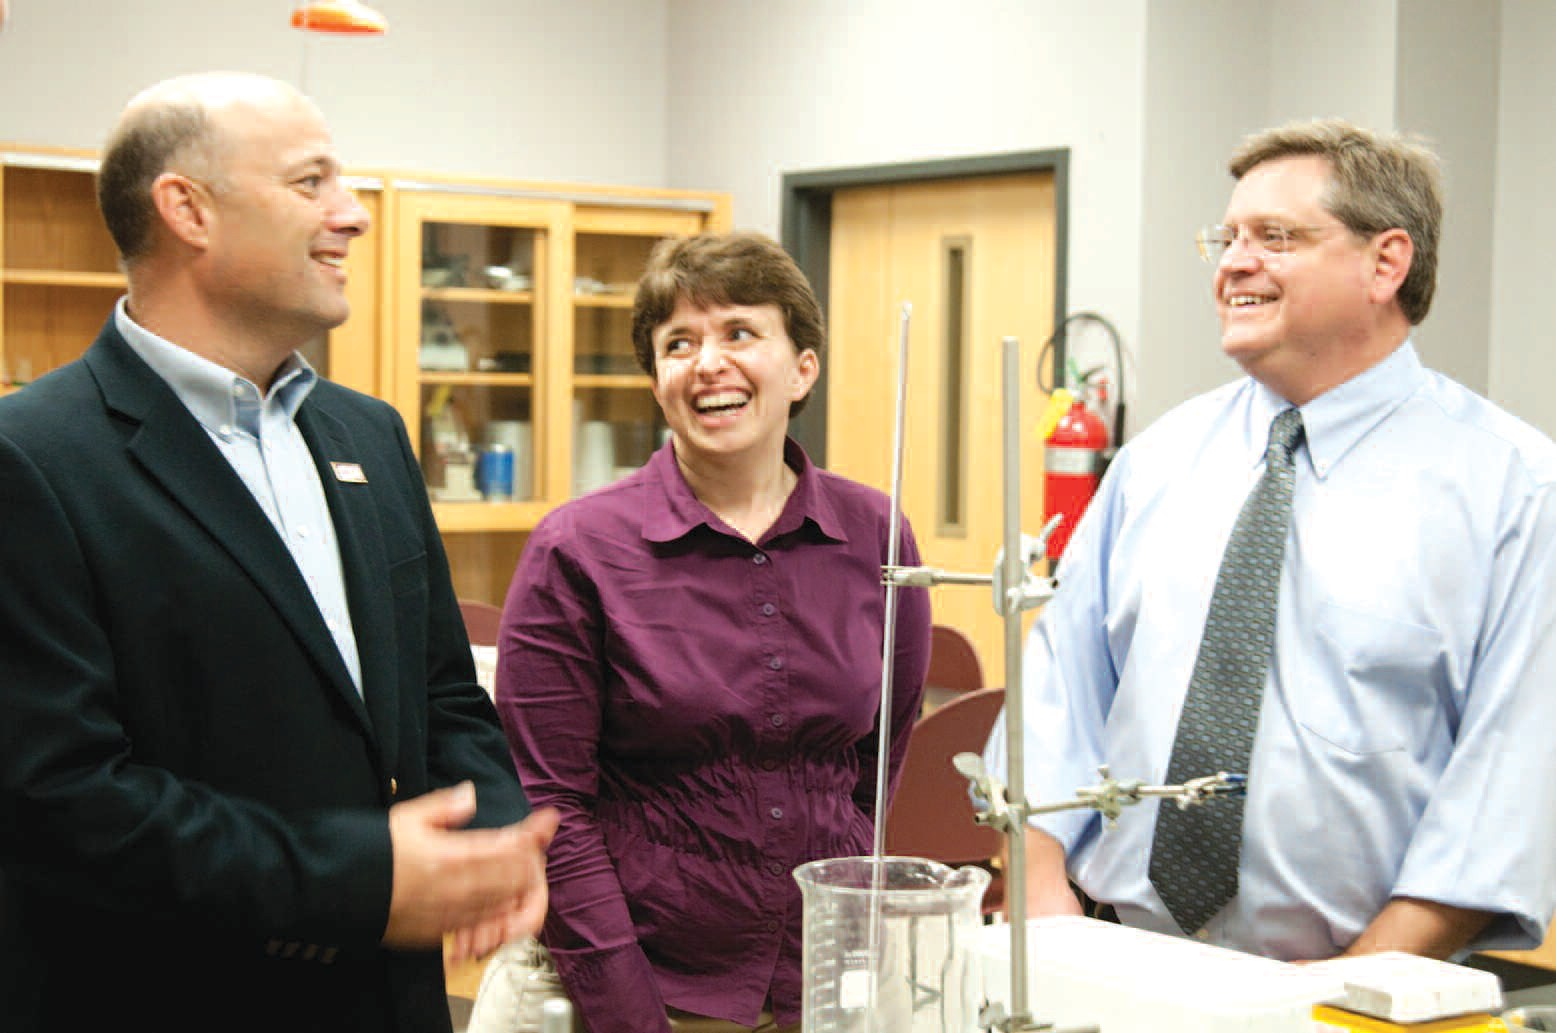 Siemens' Account Manager John Petrillo and Branch Manager Tracy Colwell tour Armstrong's Science Center with Professor Donna Mullenax.